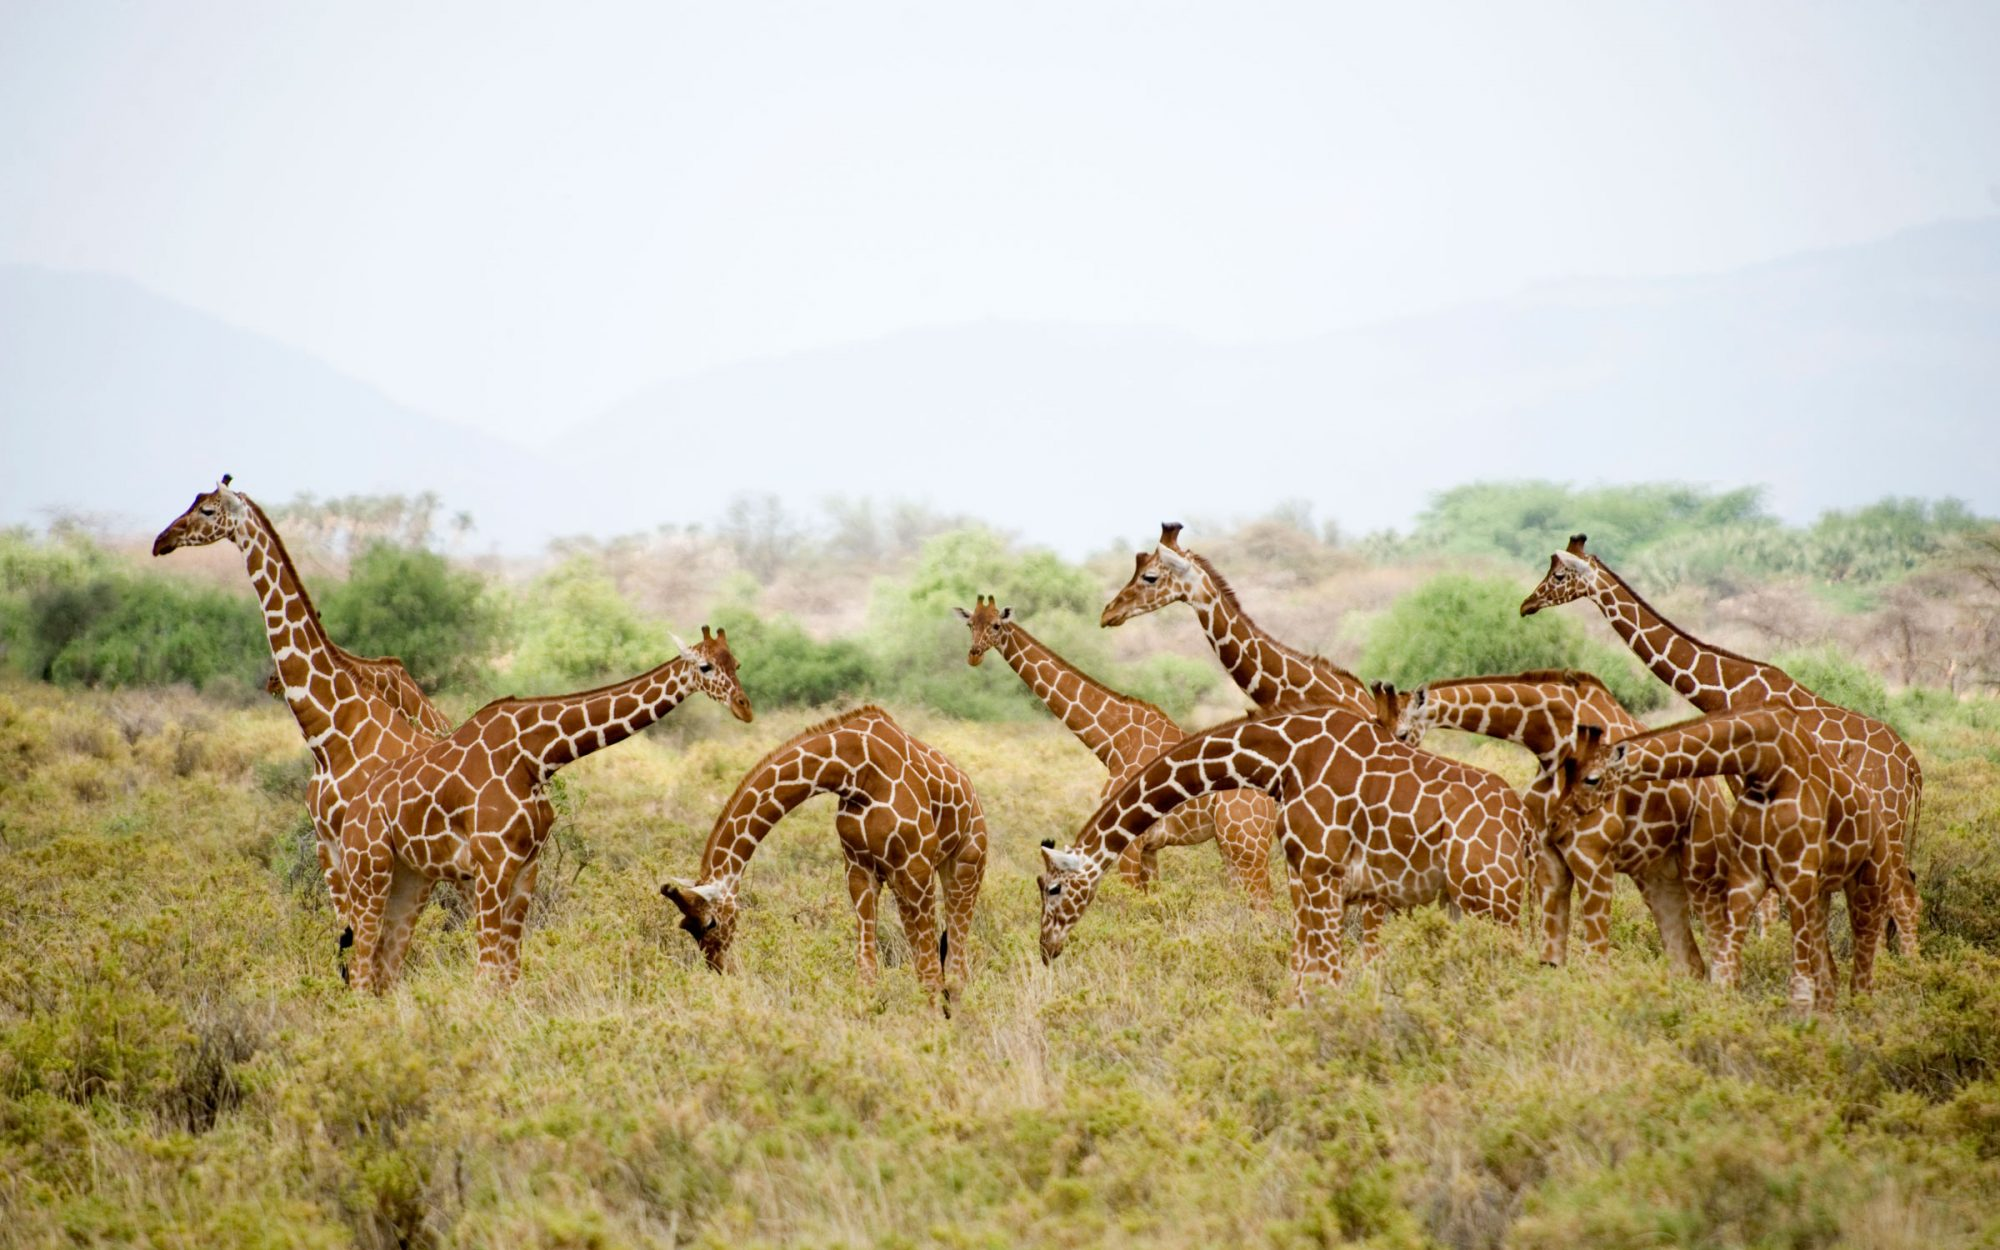 Surprise: There Are Actually Four Species of Giraffes